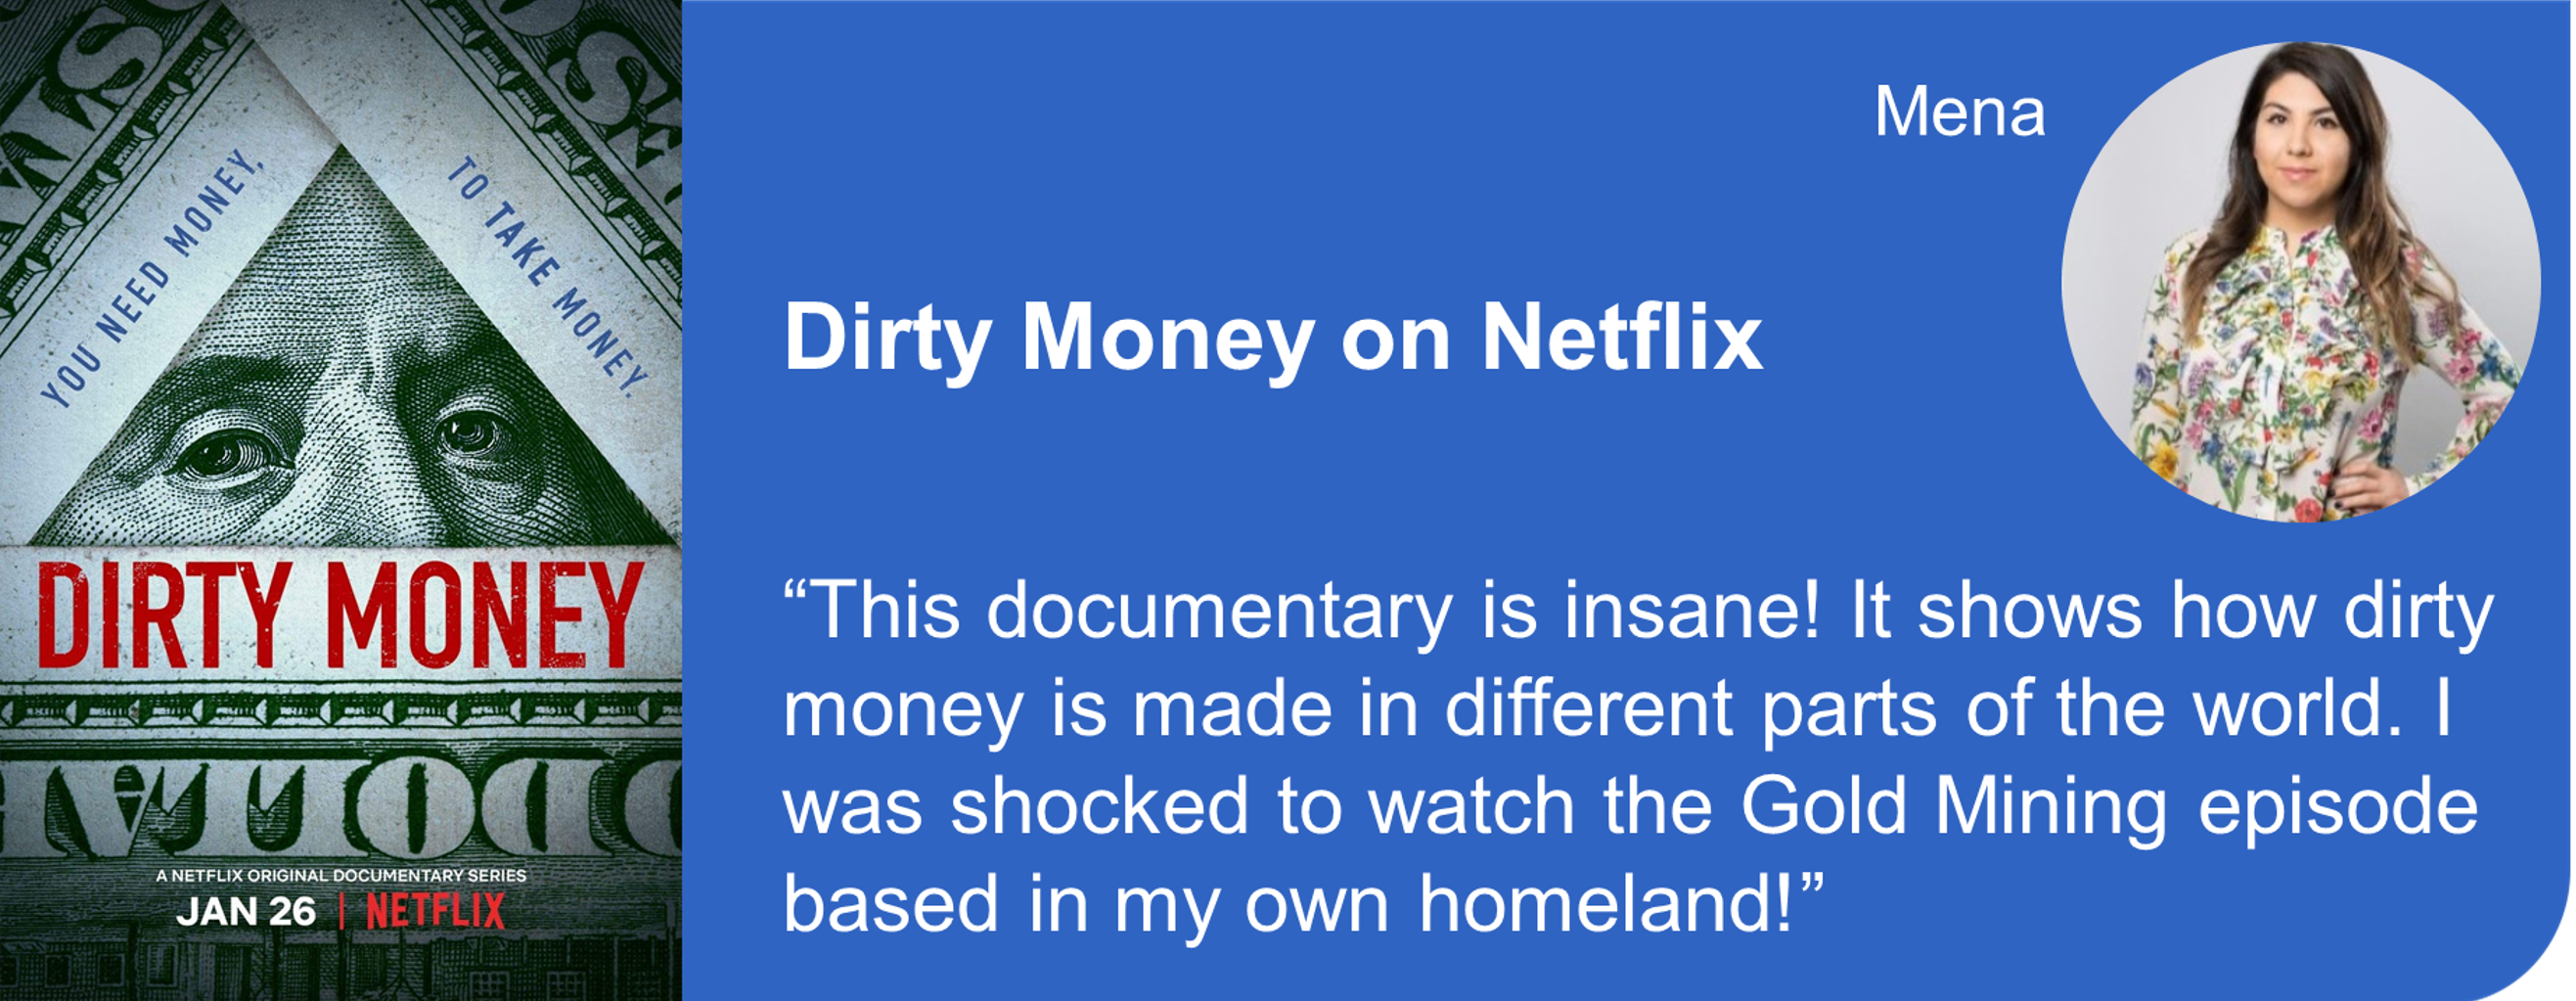 Creative Marketing Concepts Quarantine And Chill Binge-Worthy Dirty Money Netflix